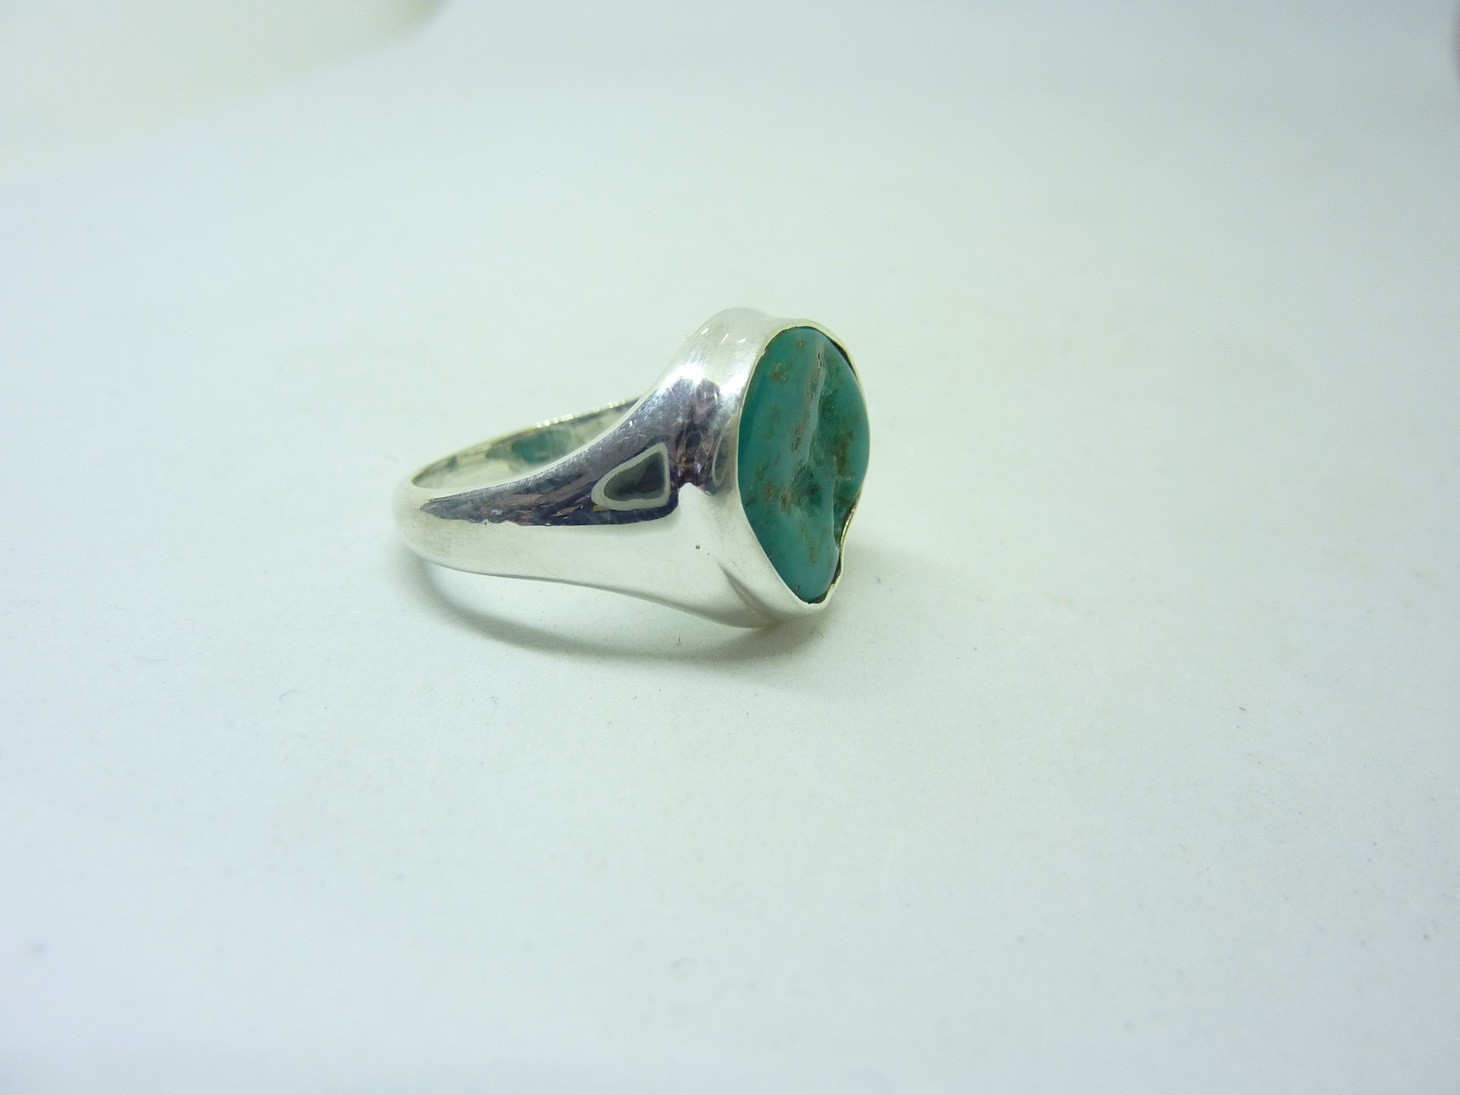 64 60 taille 53 Bague turquoise